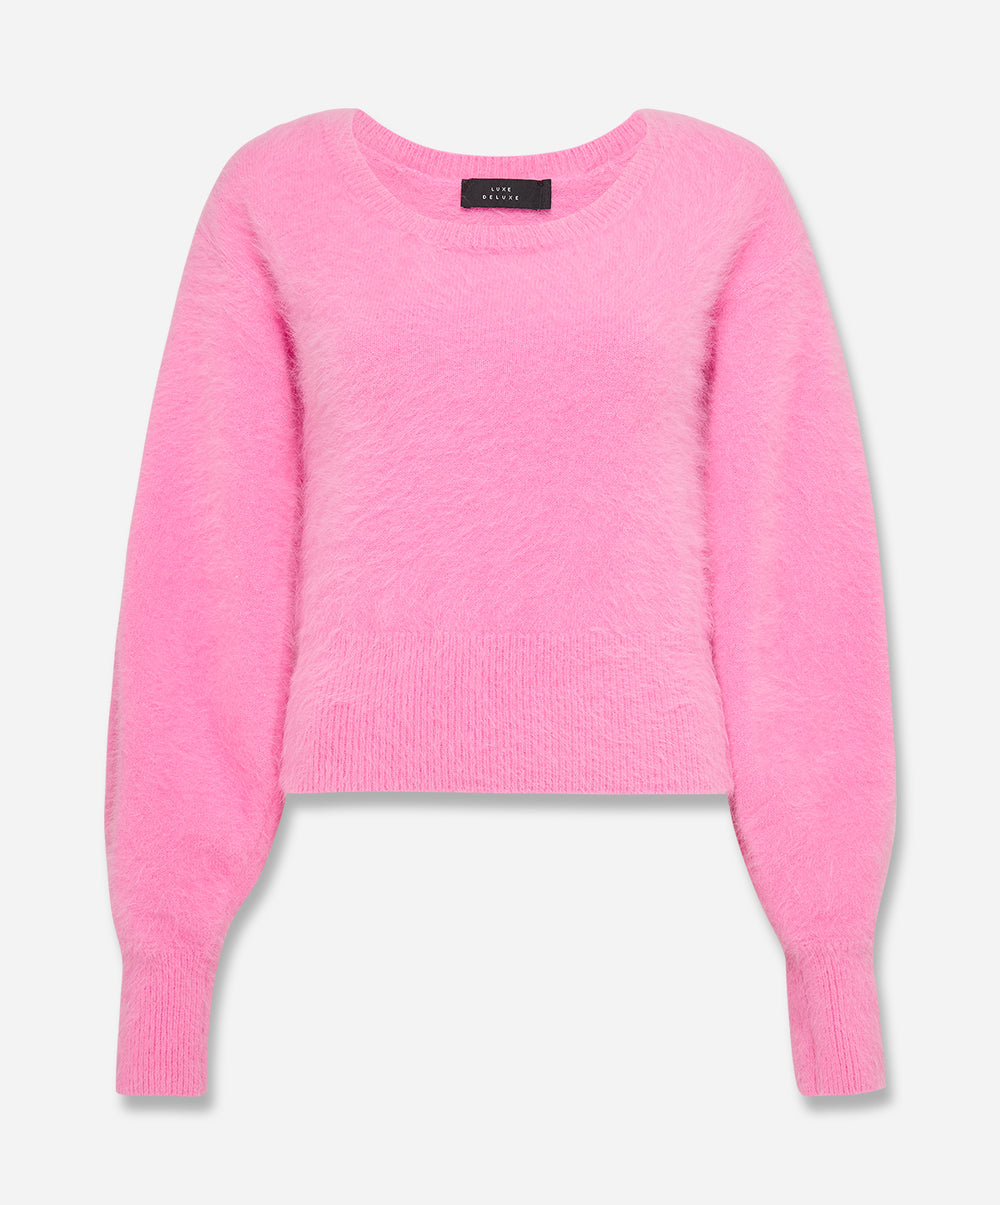 Our Song Angora Balloon Sleeve Sweater